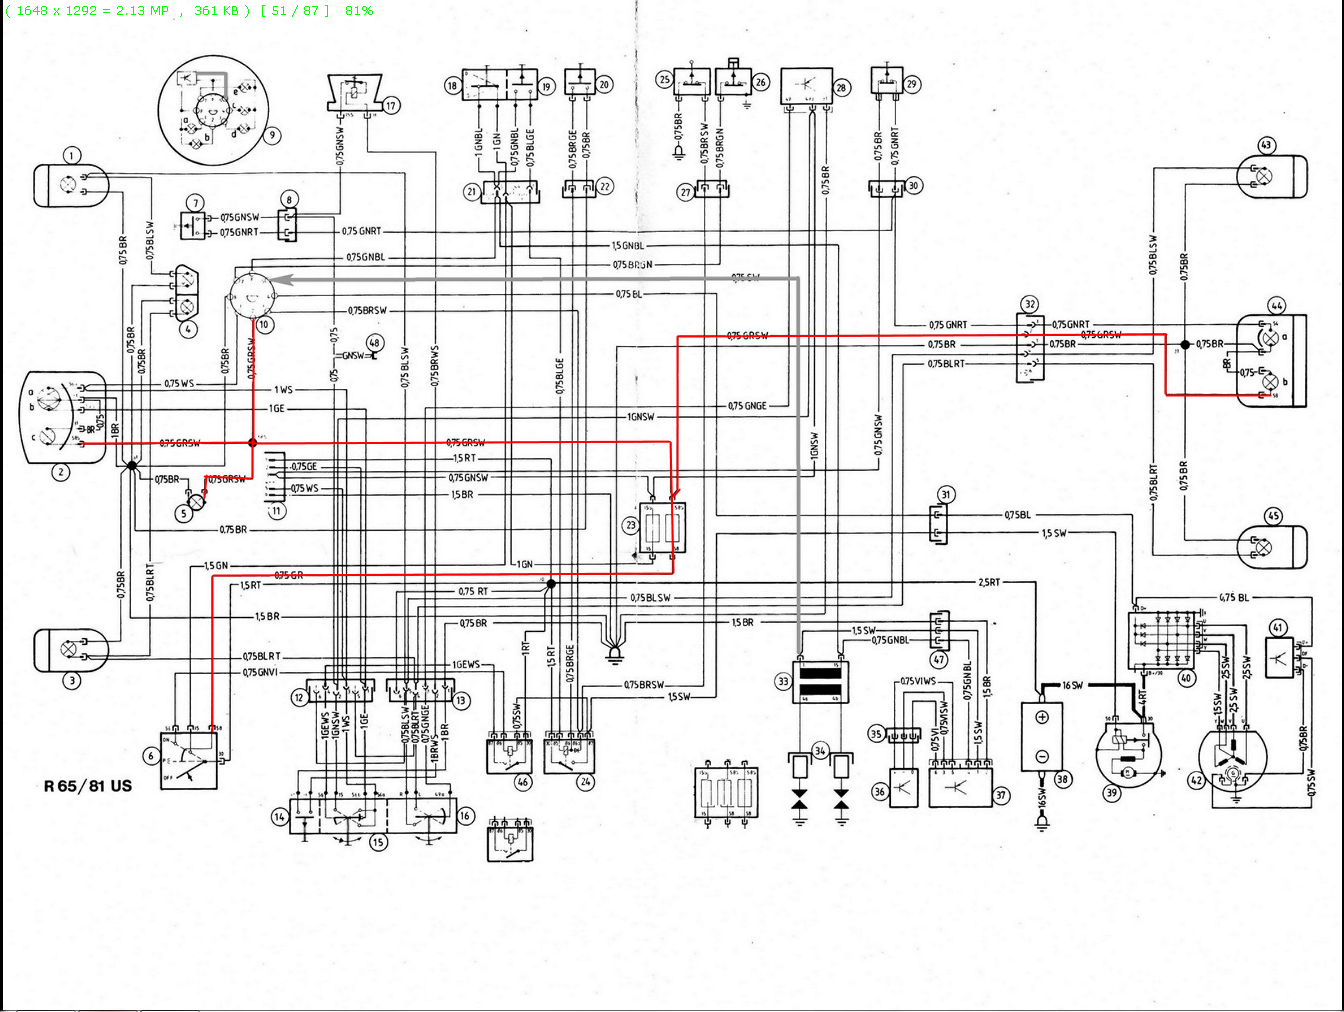 coler_schematic_marker_lights.png